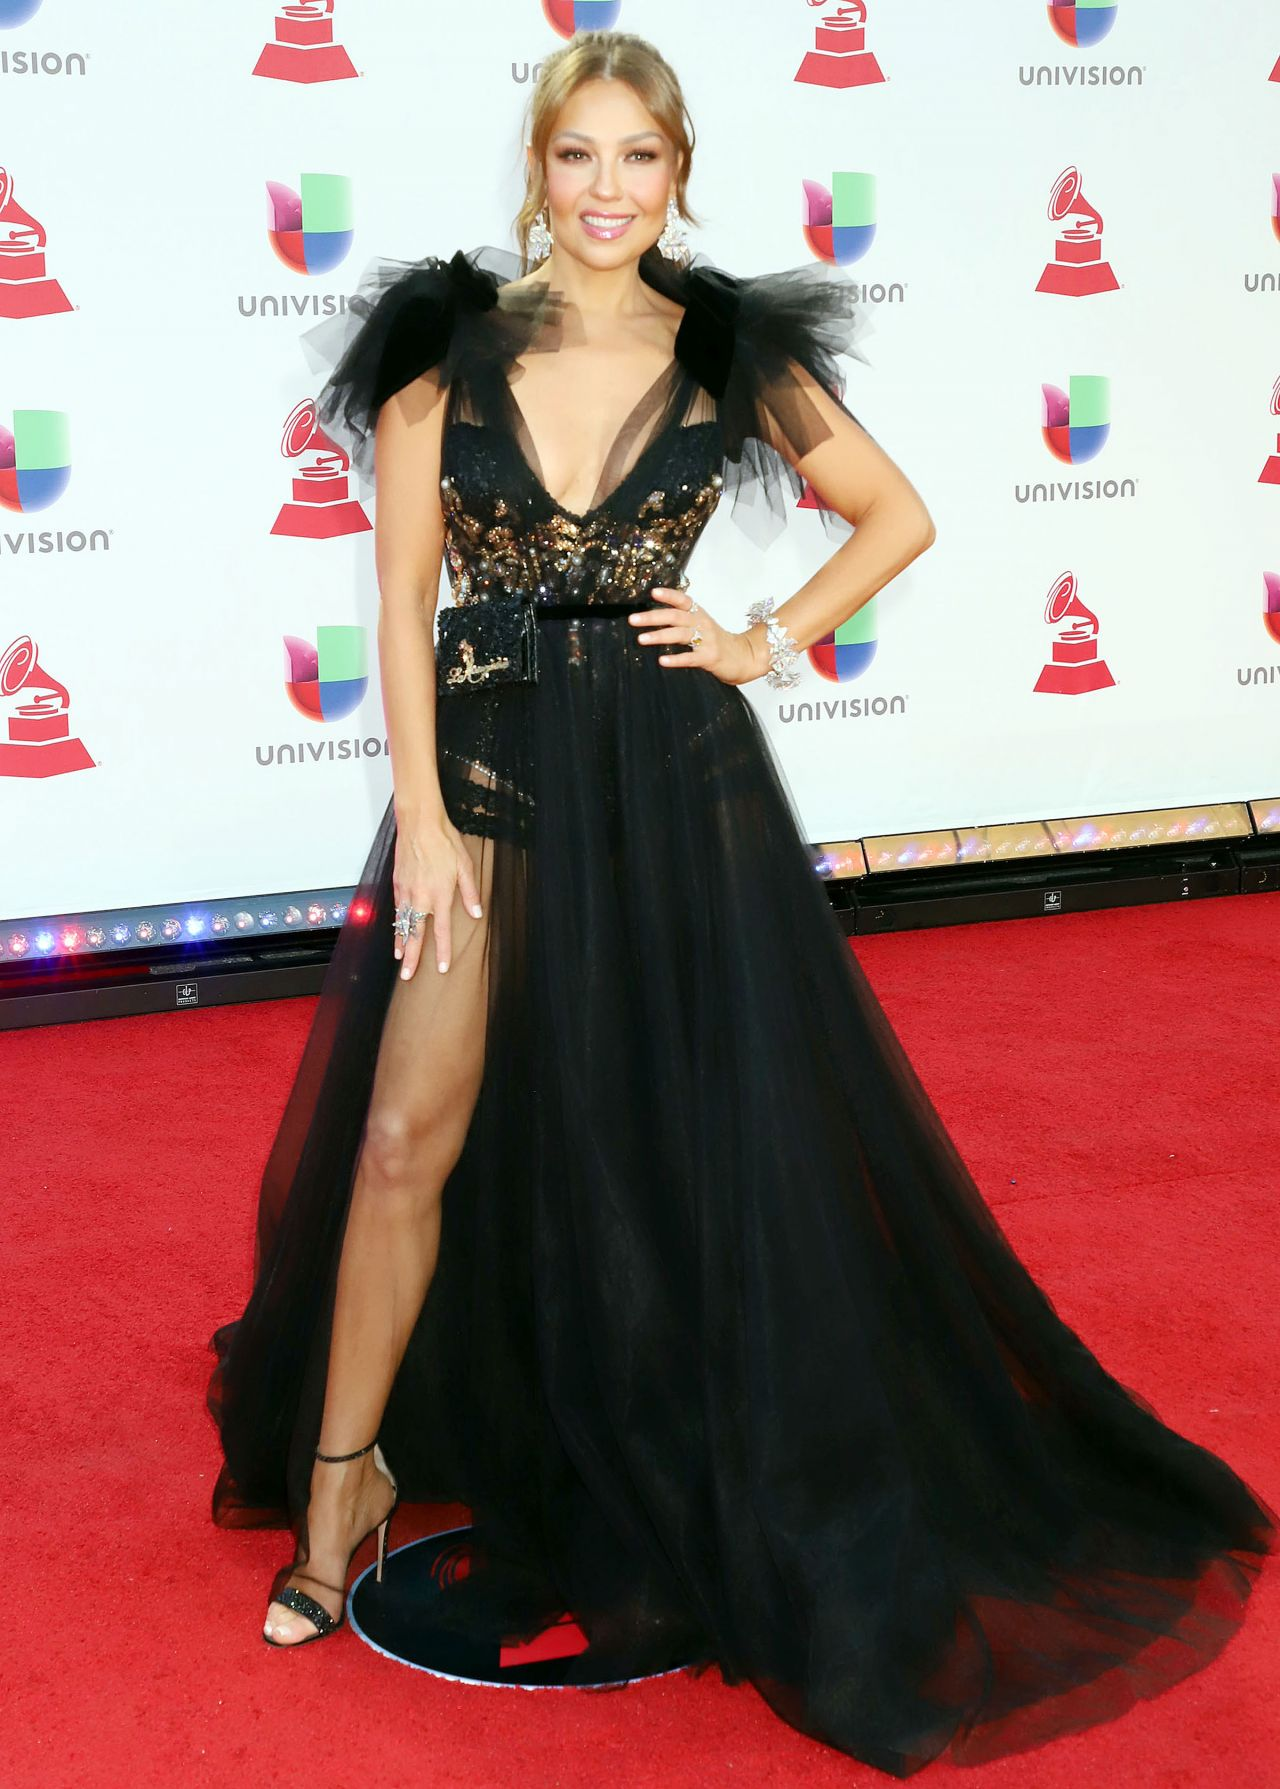 https://celebmafia.com/wp-content/uploads/2018/11/thalia-2018-latin-grammy-awards-7.jpg